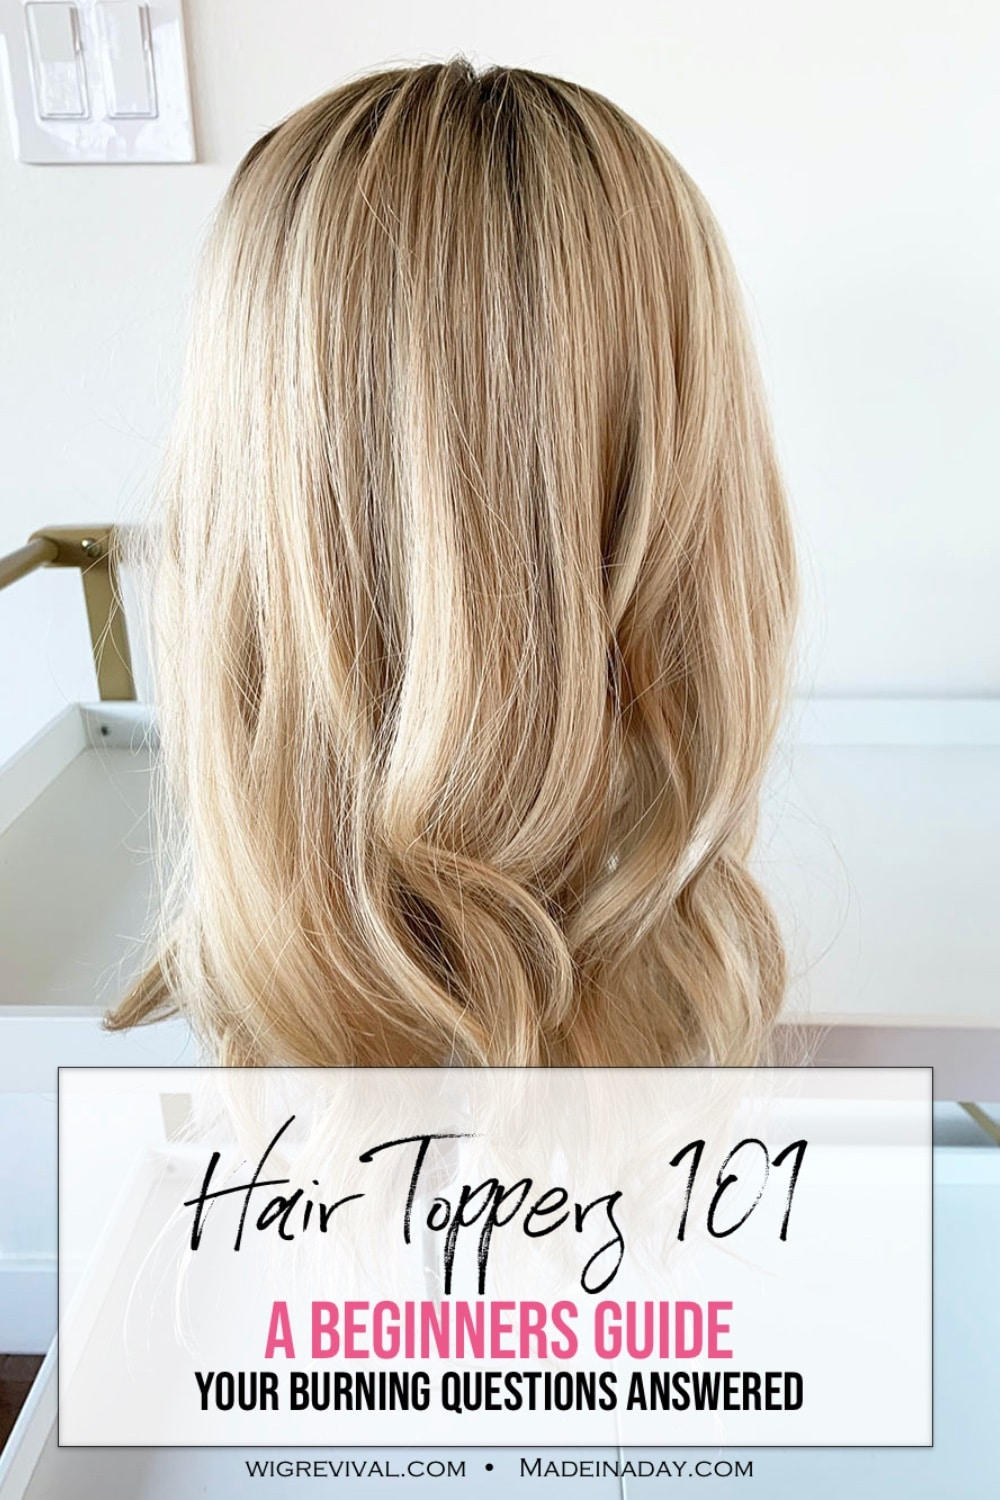 Hair Topper Q & A -Newbies Guide 10